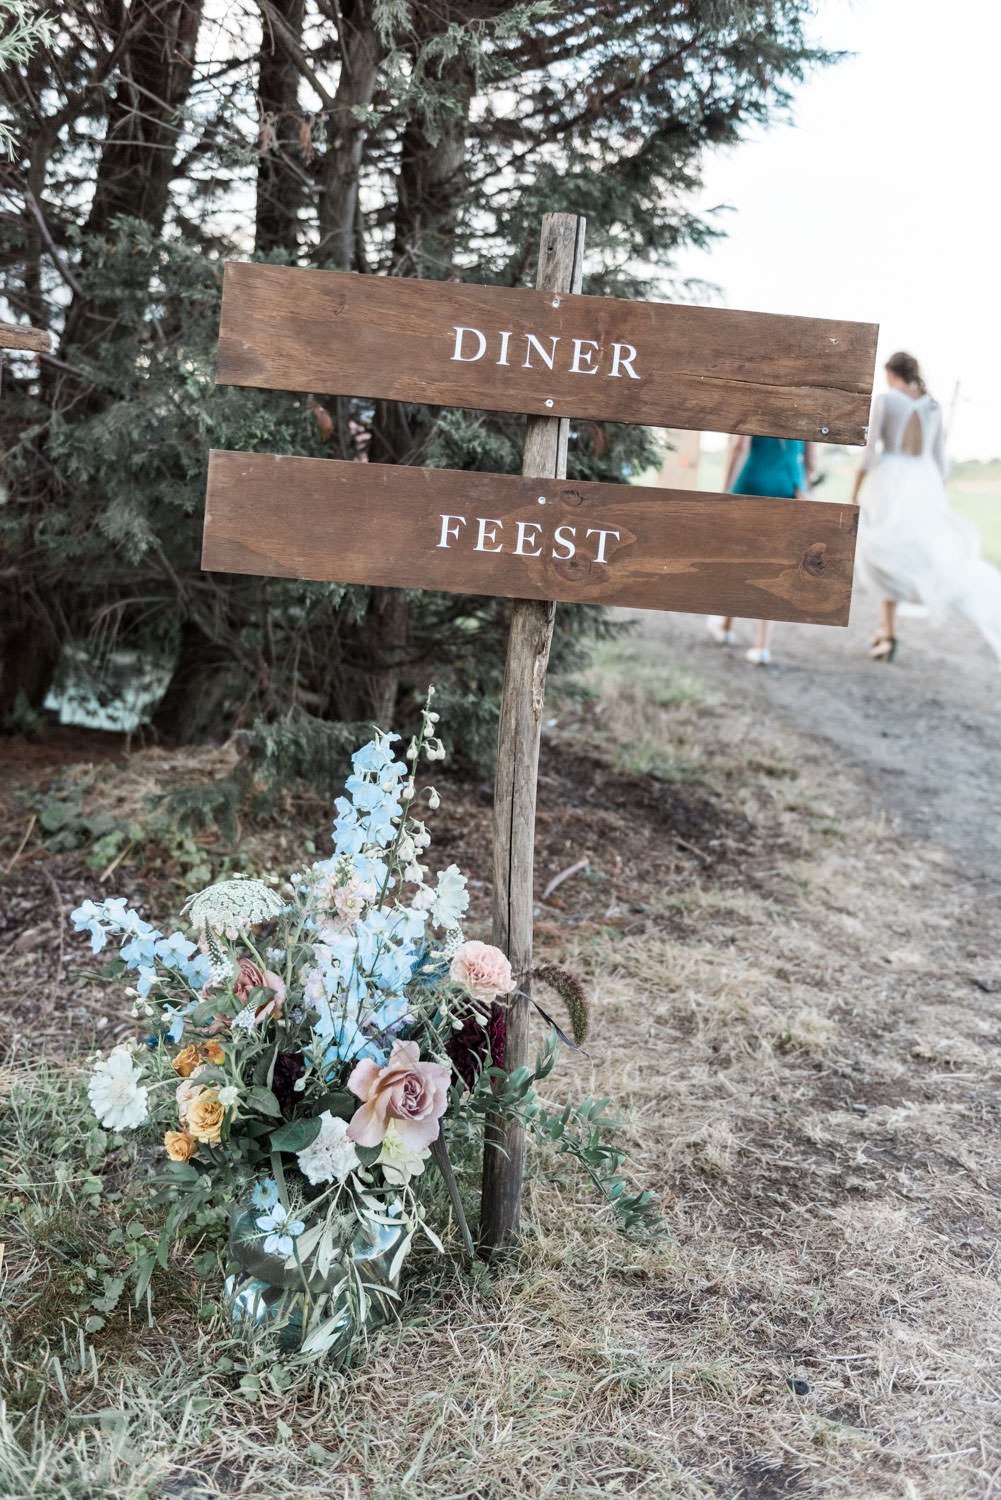 Wedding signage by Kellygrafie and floral installation by Edenique Floral Design